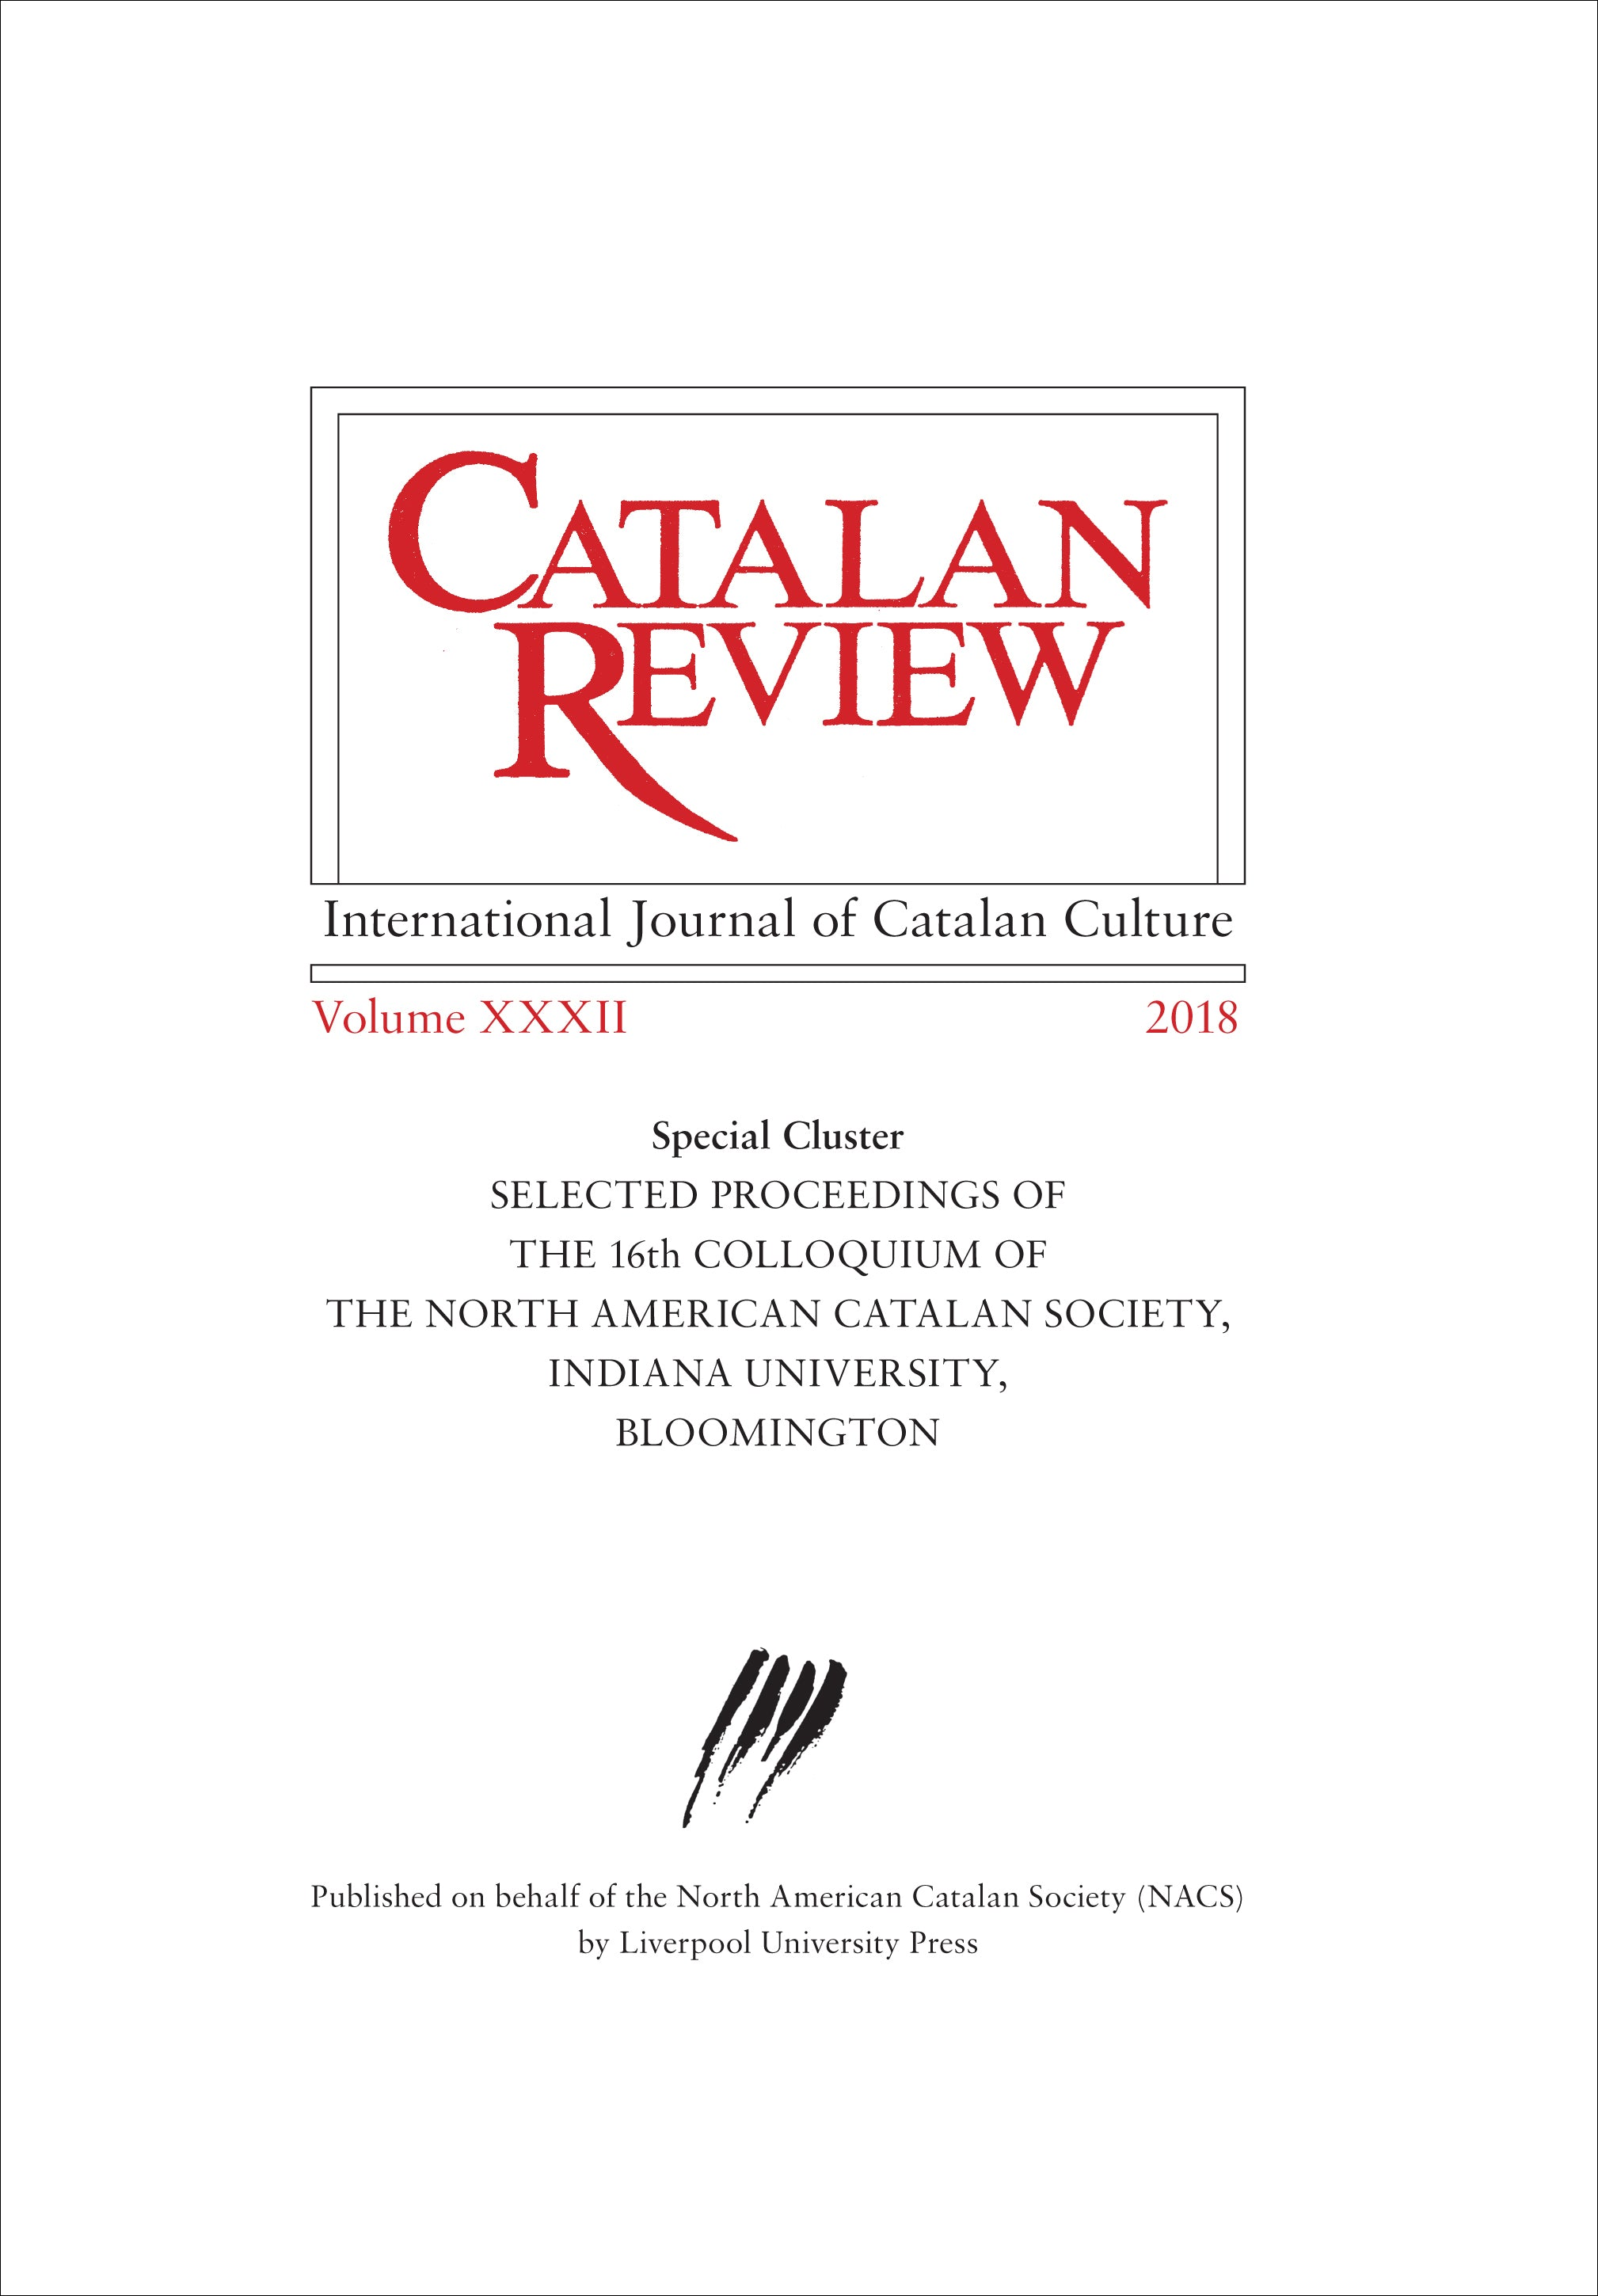 link to Catalan Review